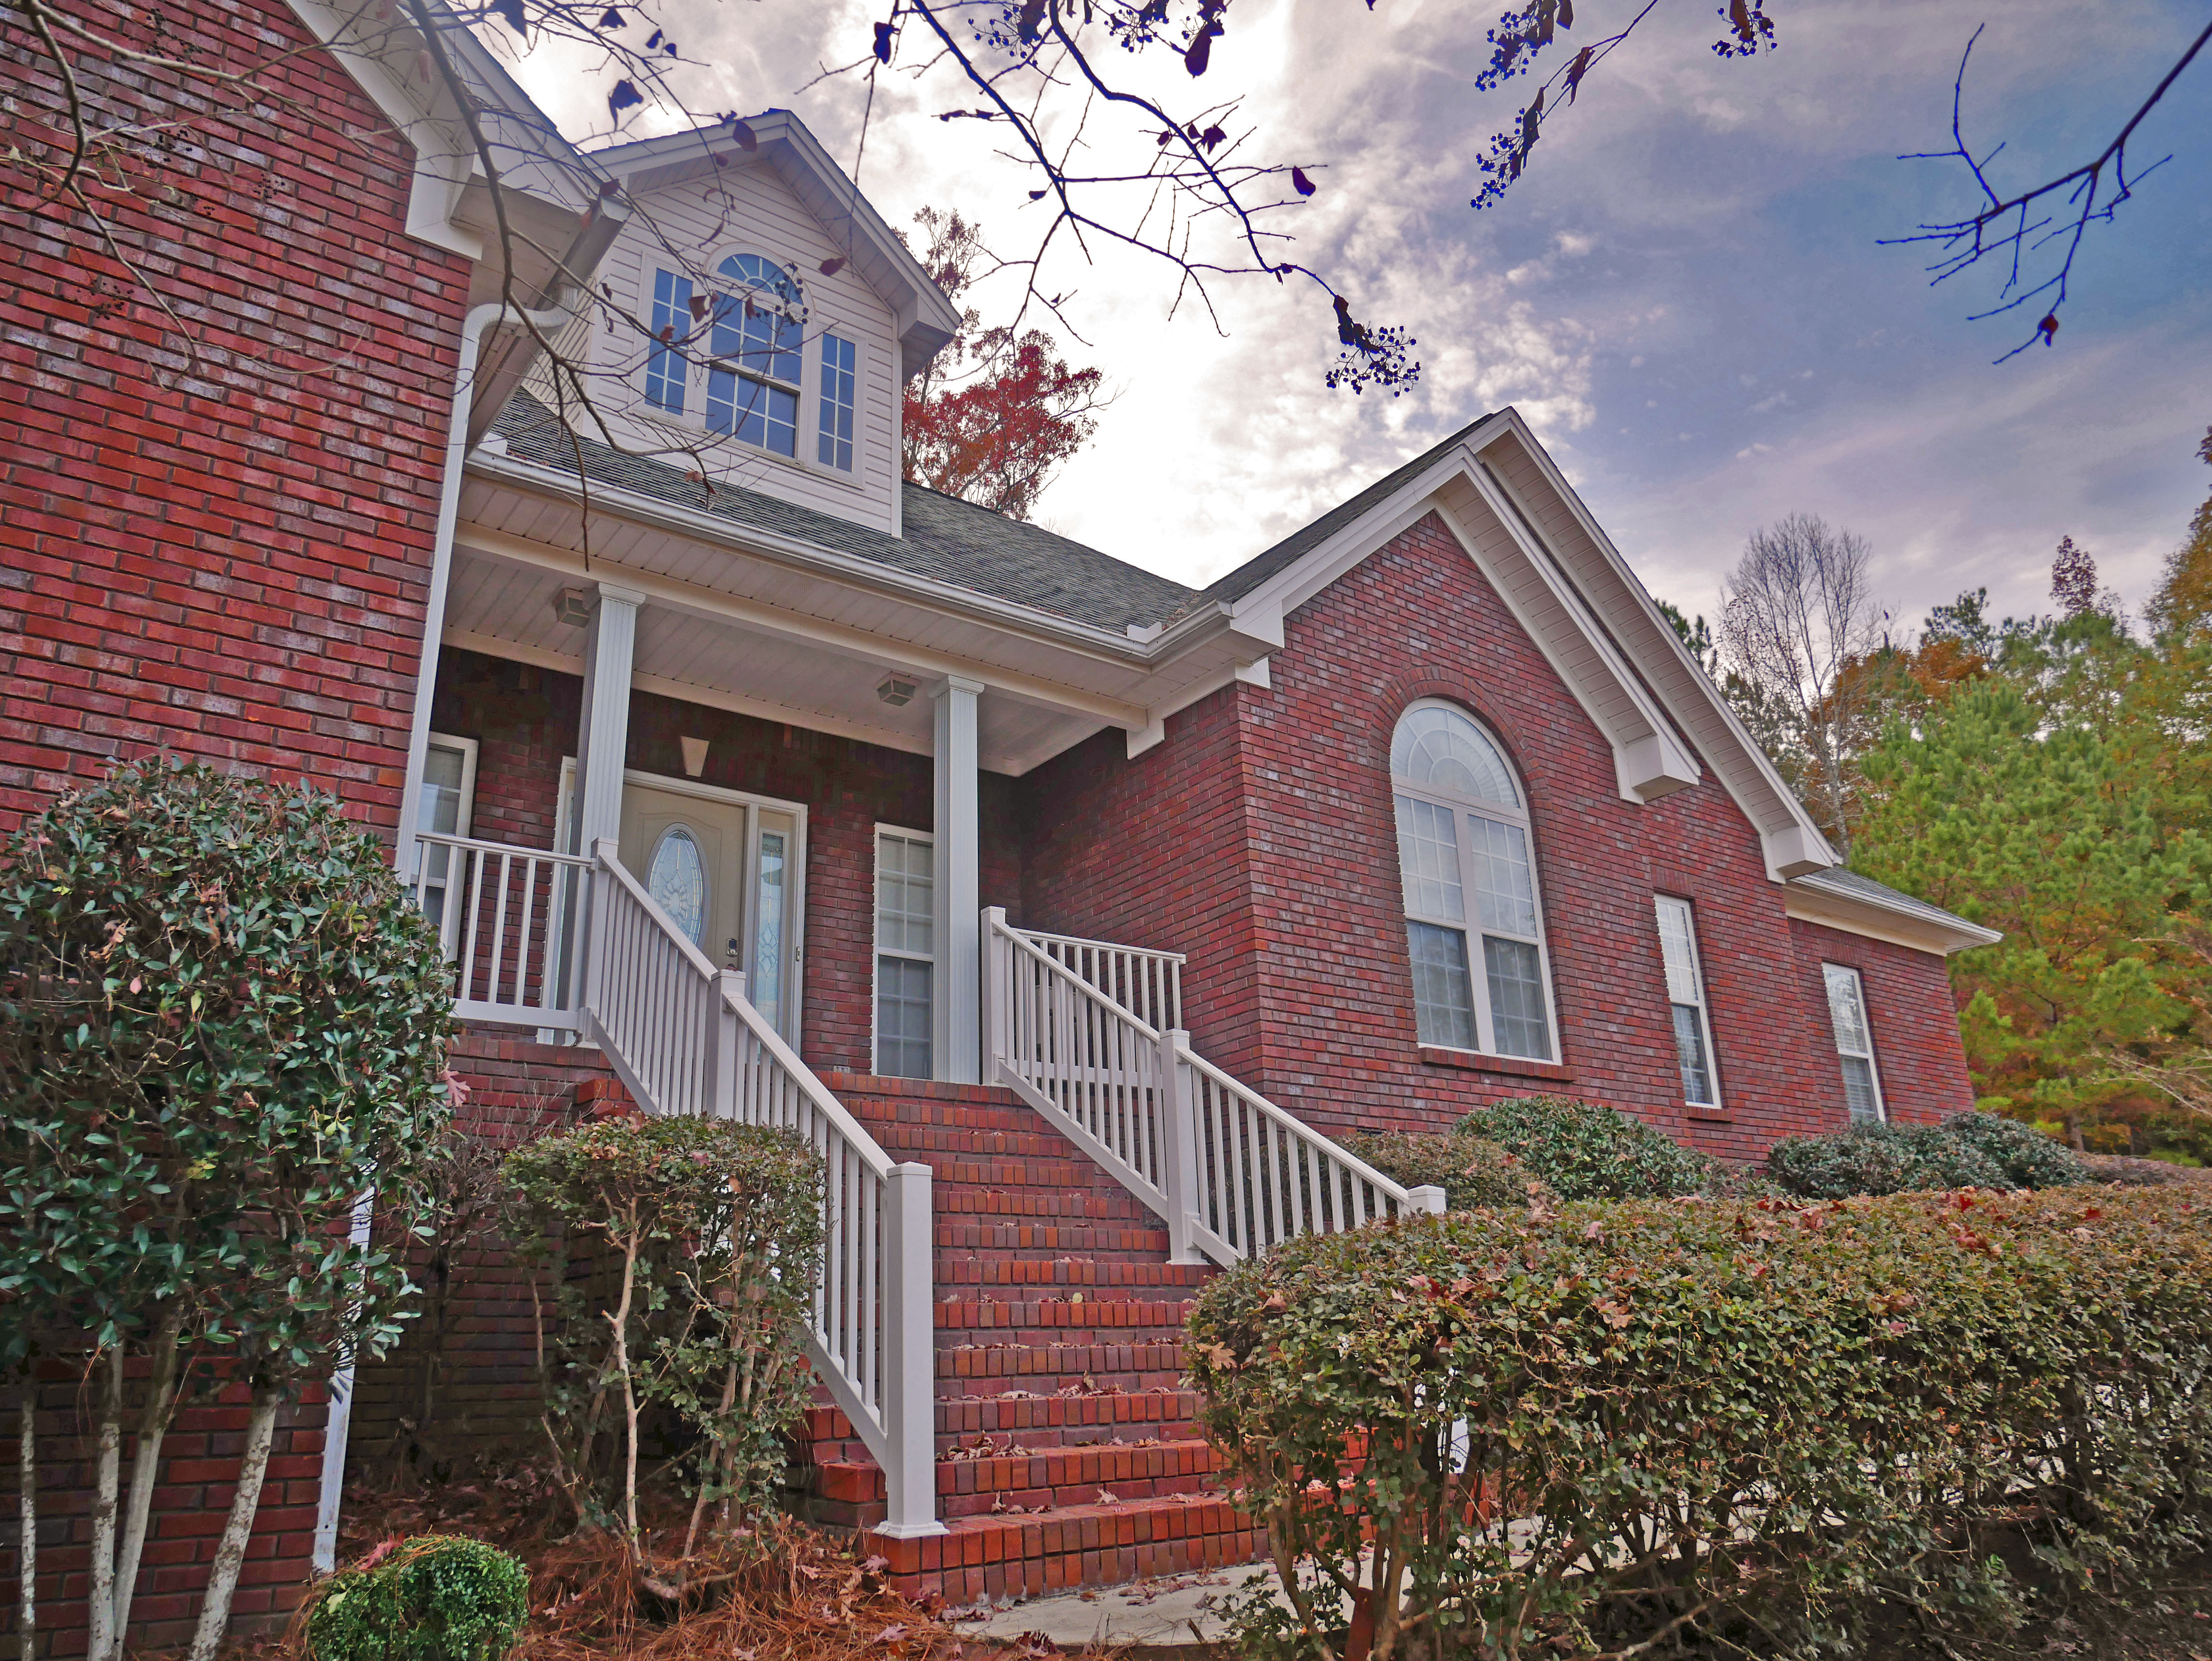 FOR SALE IN PRATTVILLE! 4 BED 3 BATH AT 1004 WINDRUSH LANE